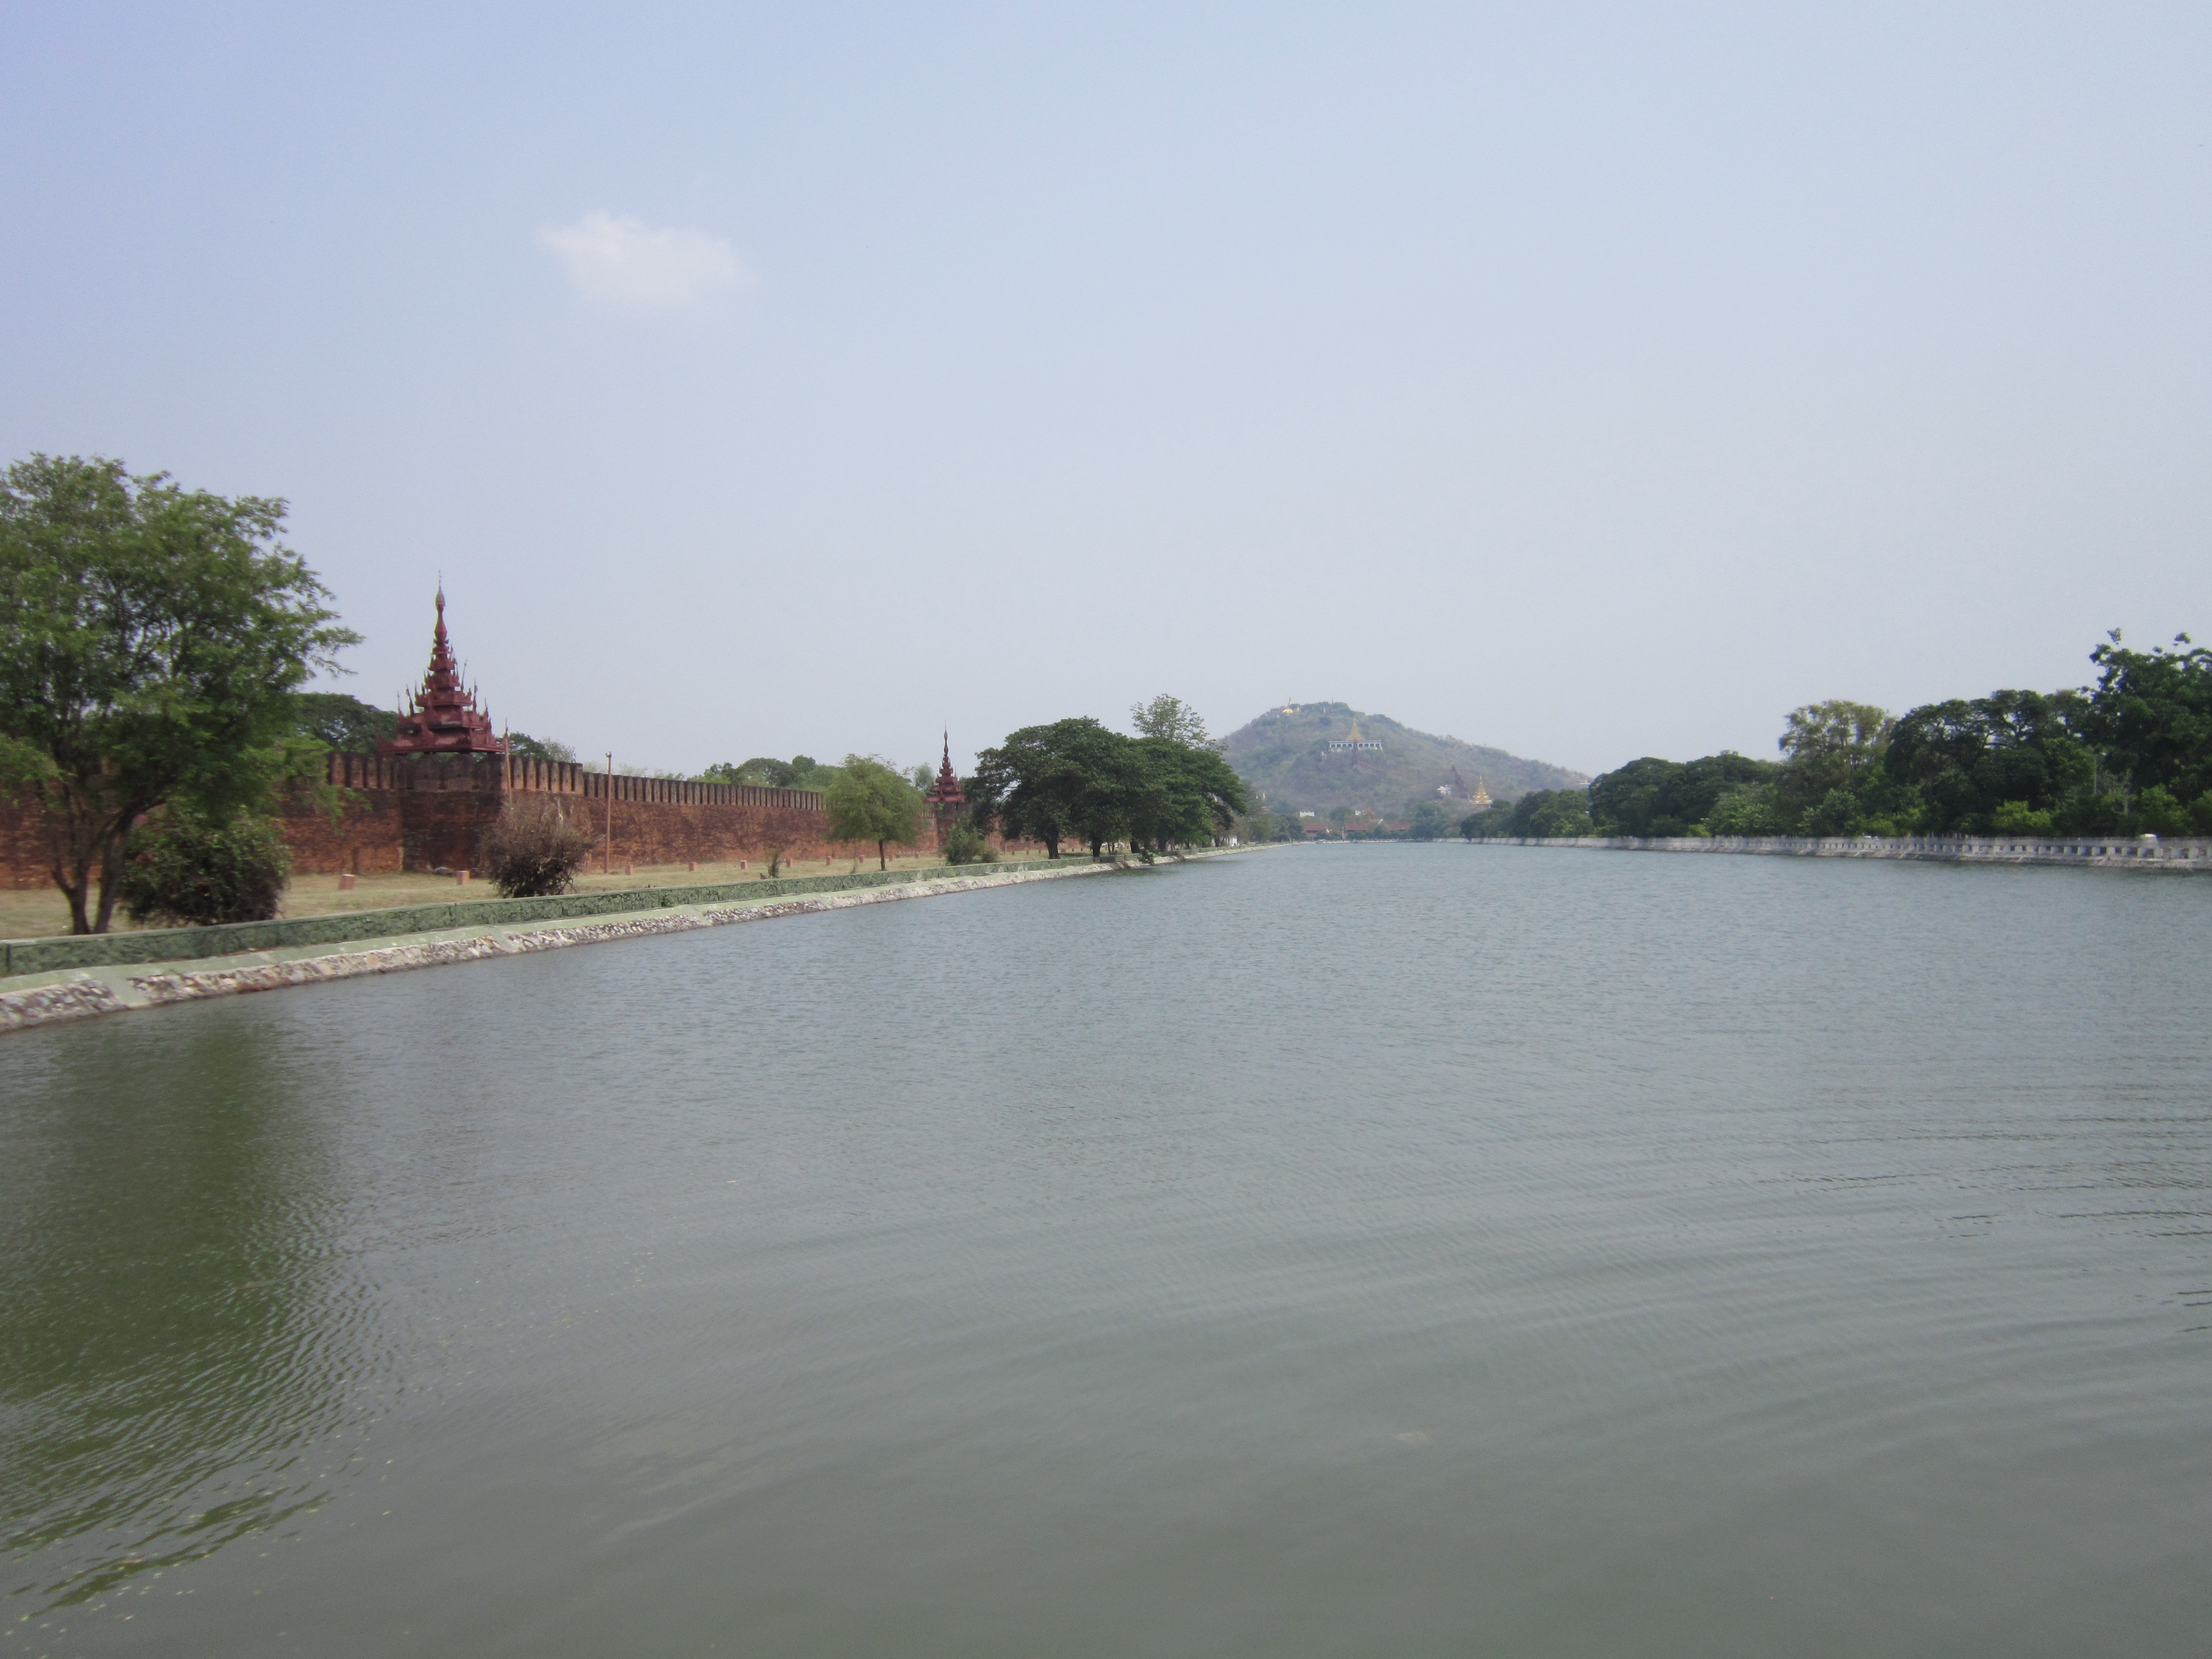 Royal Palace with Mandalay Hill in the background